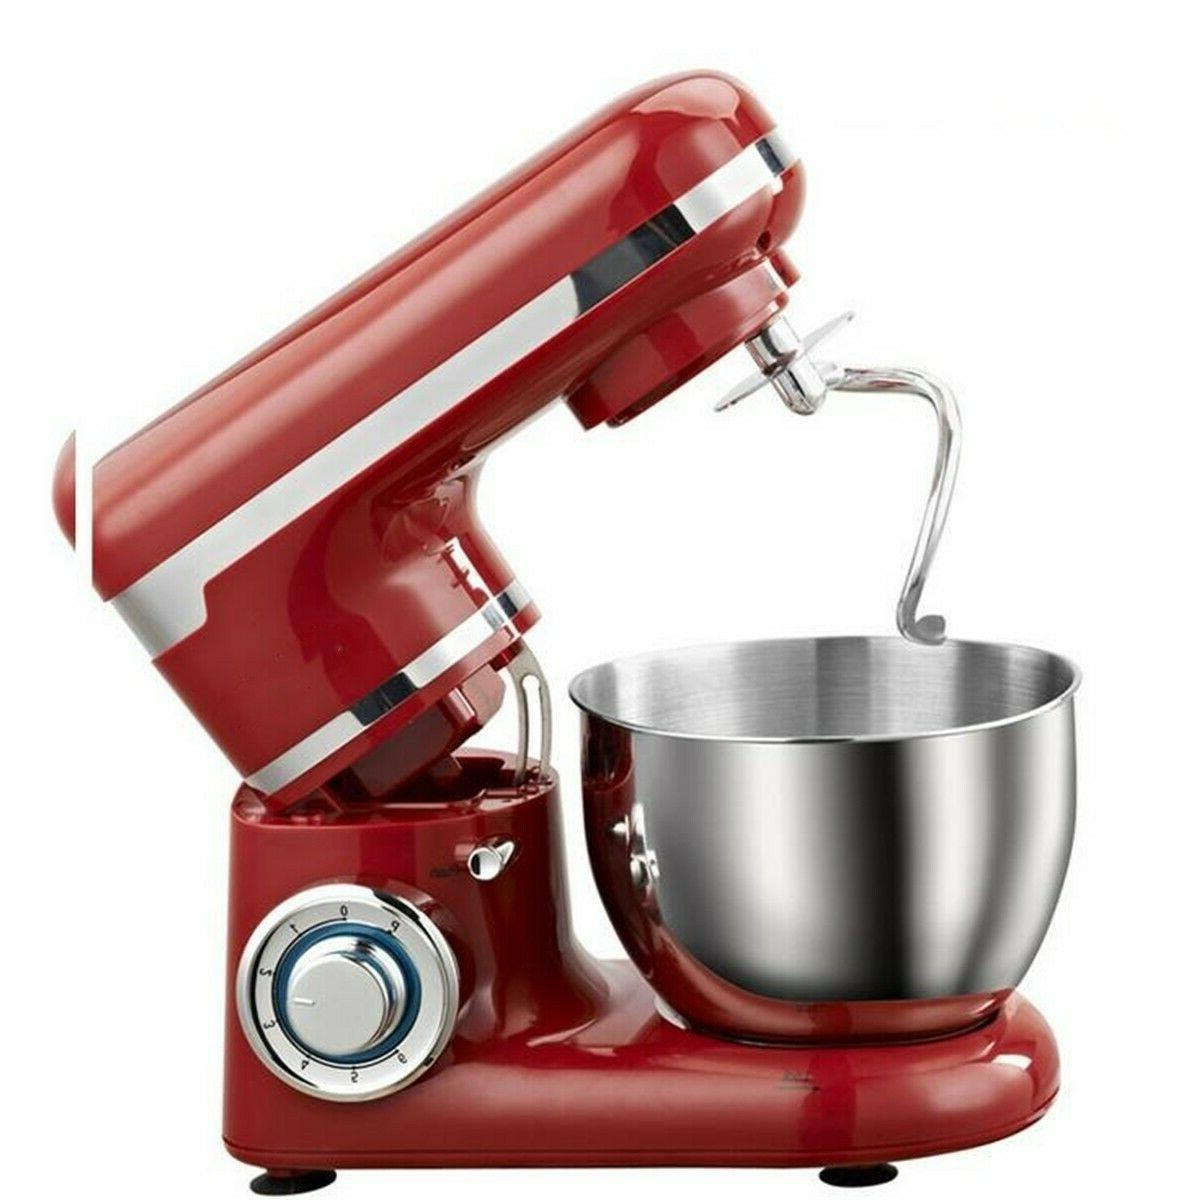 Hamilton 64654 Classic Hand & Mixer -Red, with stainless